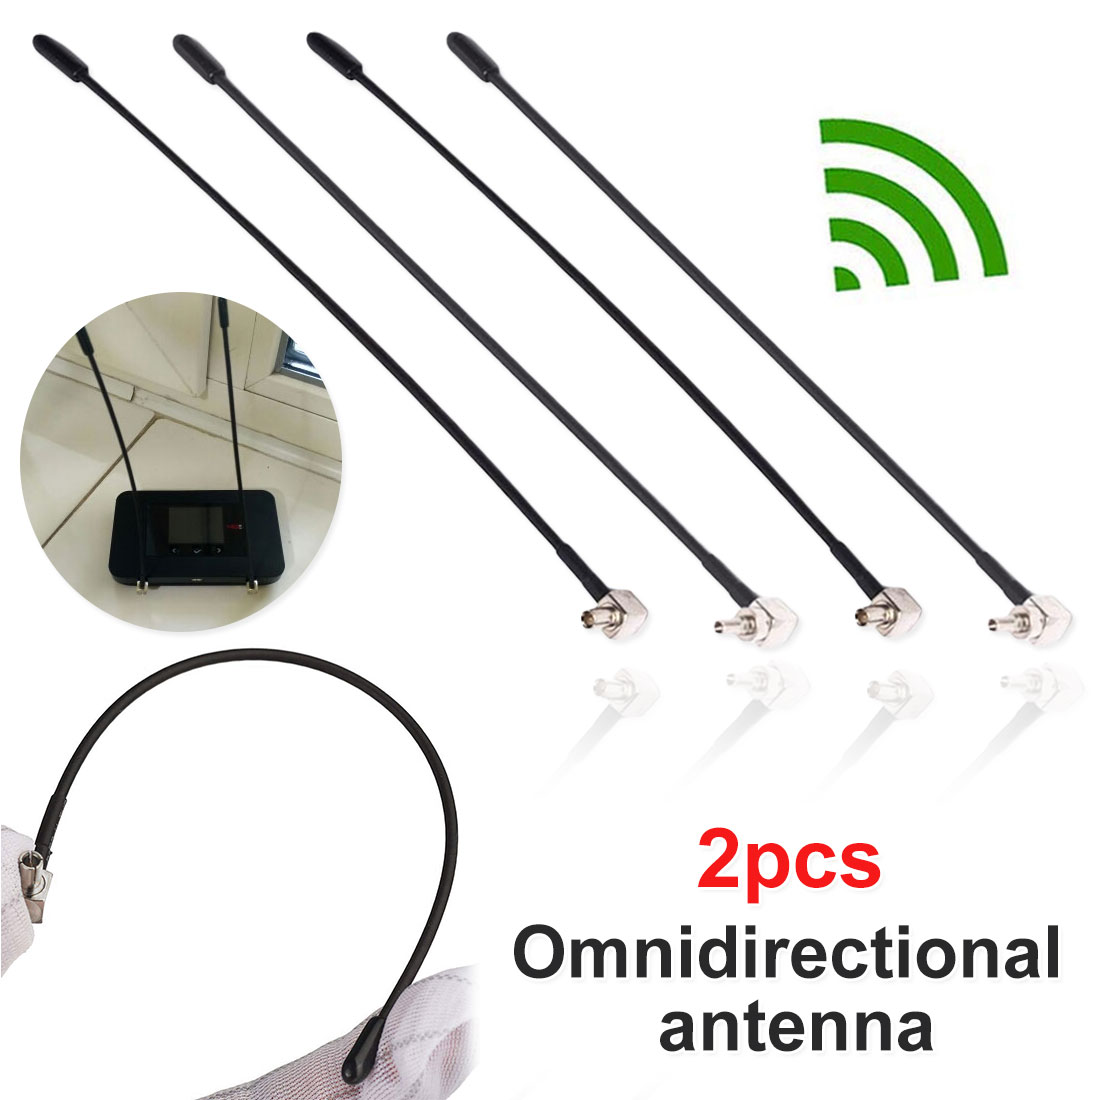 2pcs 4G LTE Antenna With TS9 Or CRC9 Connector For Huawei E398 E5372 E589 E392 Zte MF61 MF62 Aircard 753s 5dbi Gain Wifi Router